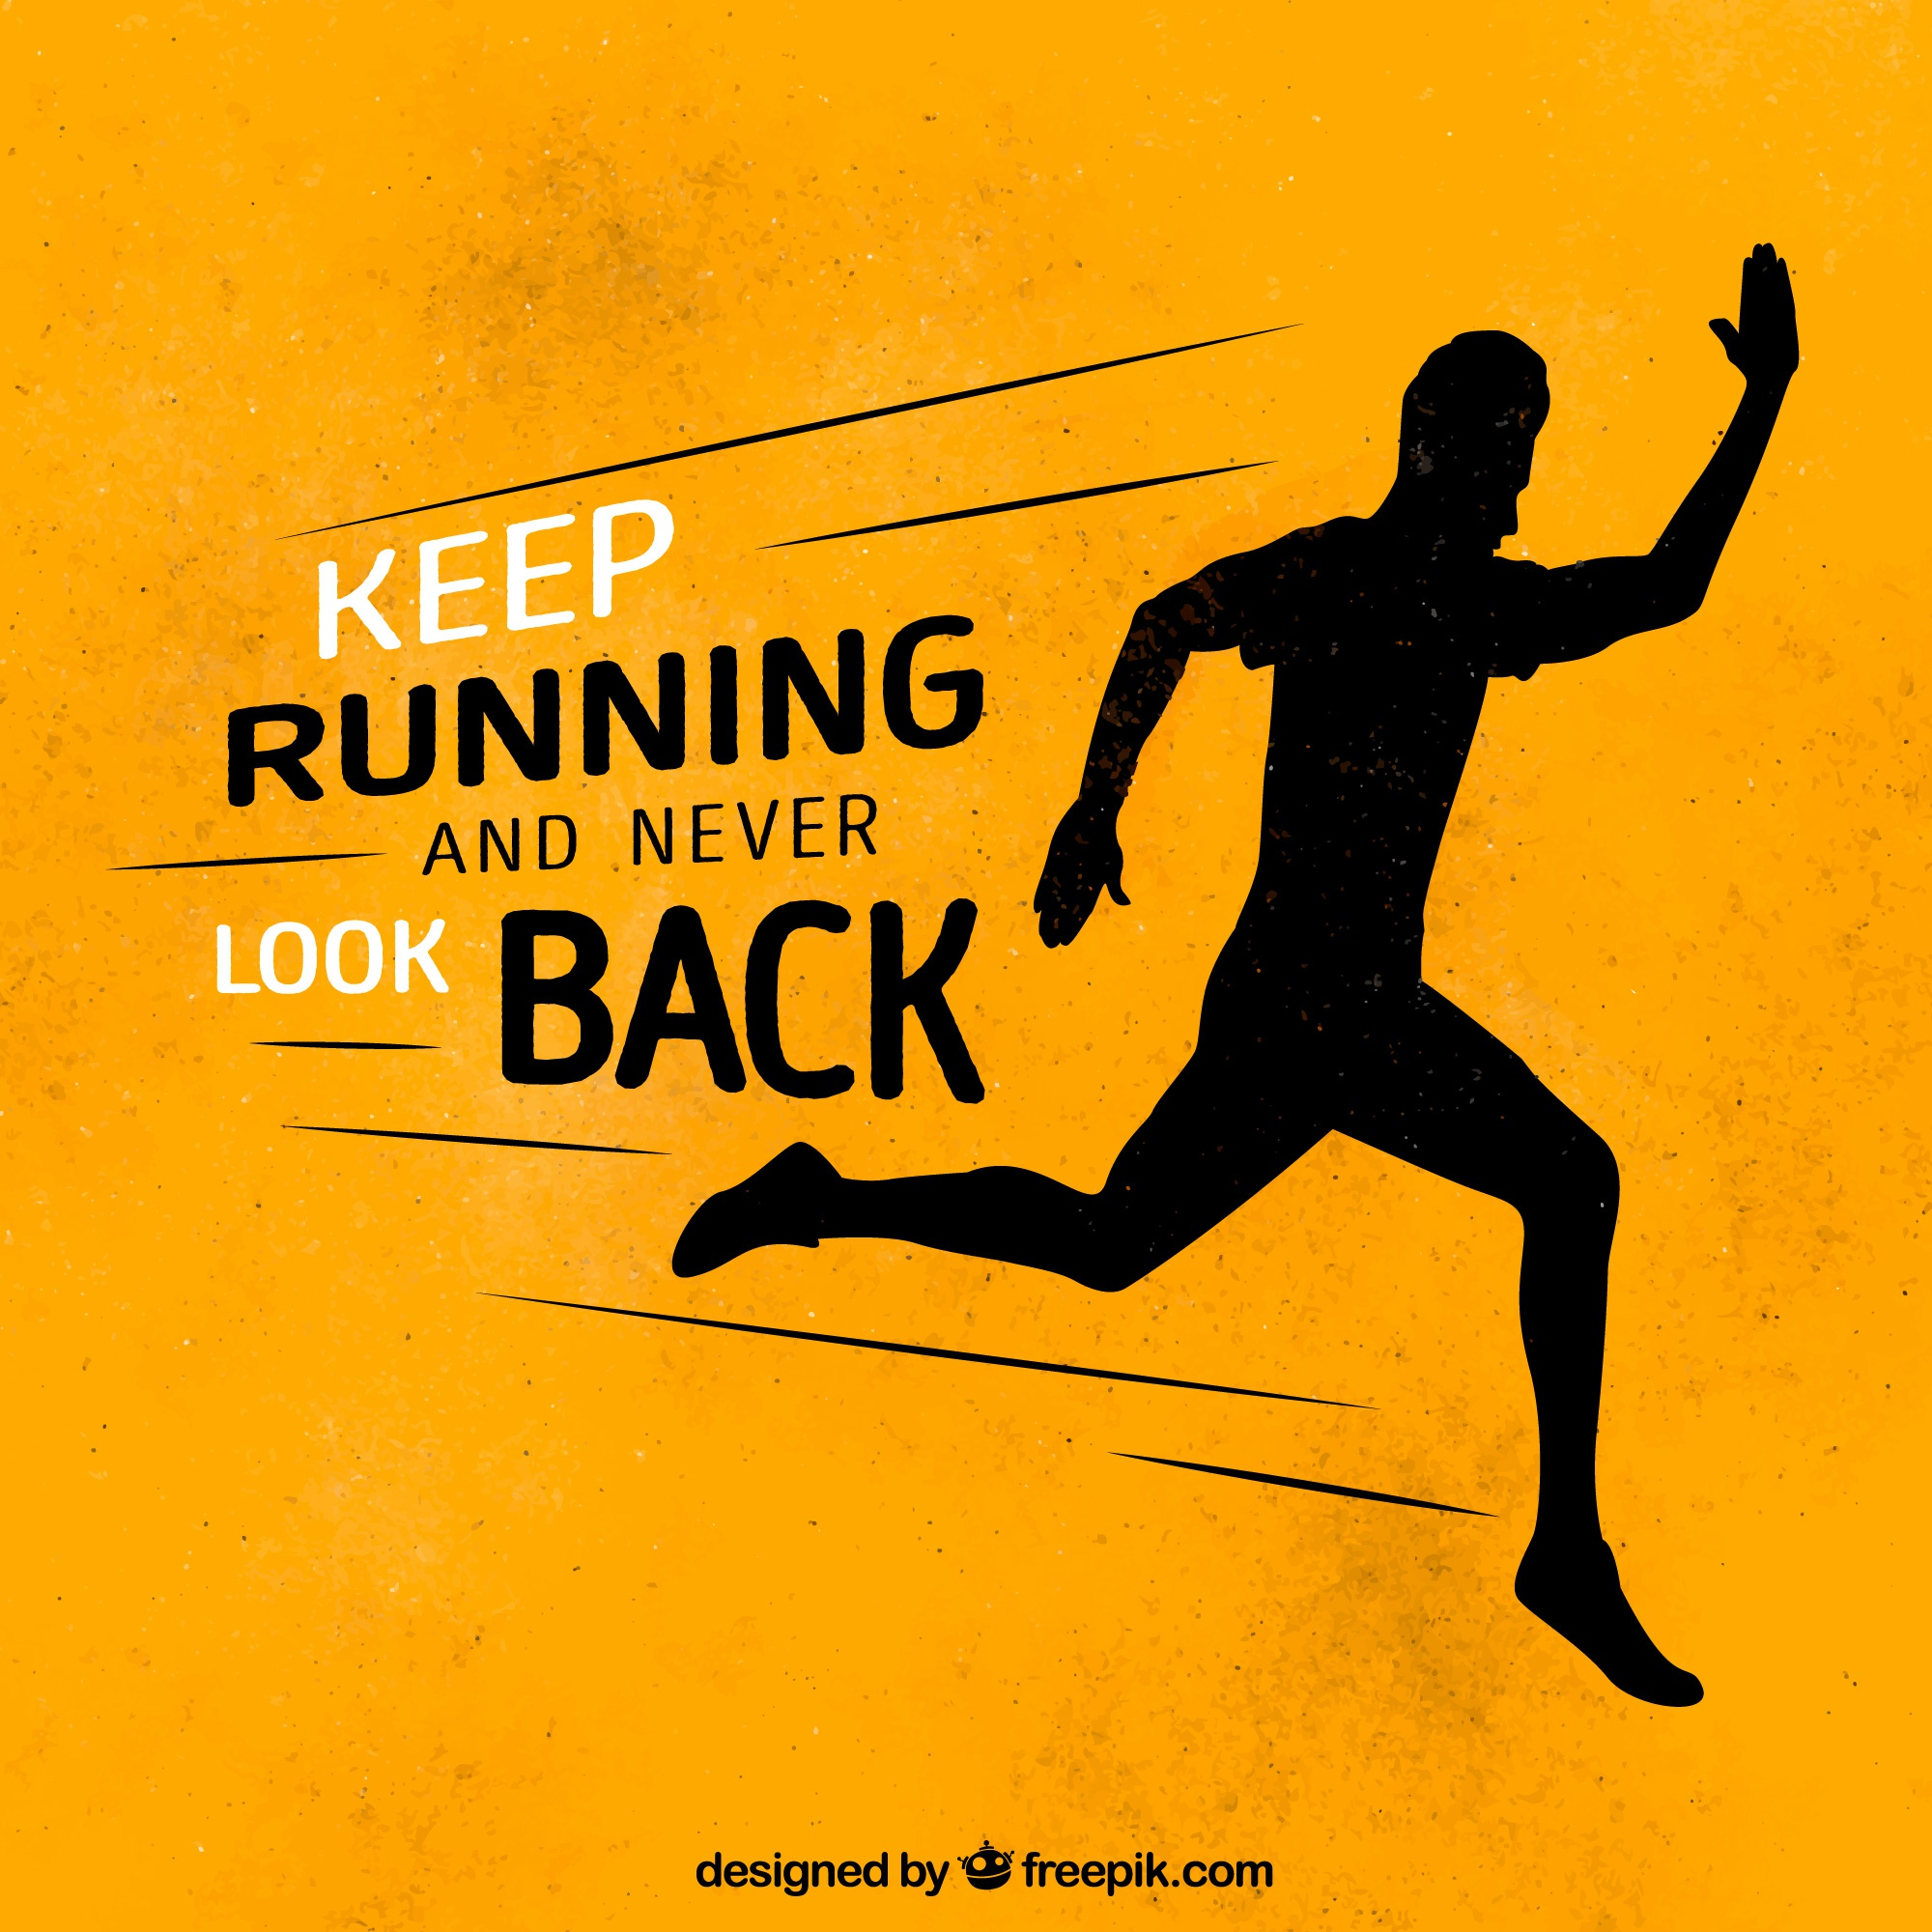 Inspiring message  keep running and never look back